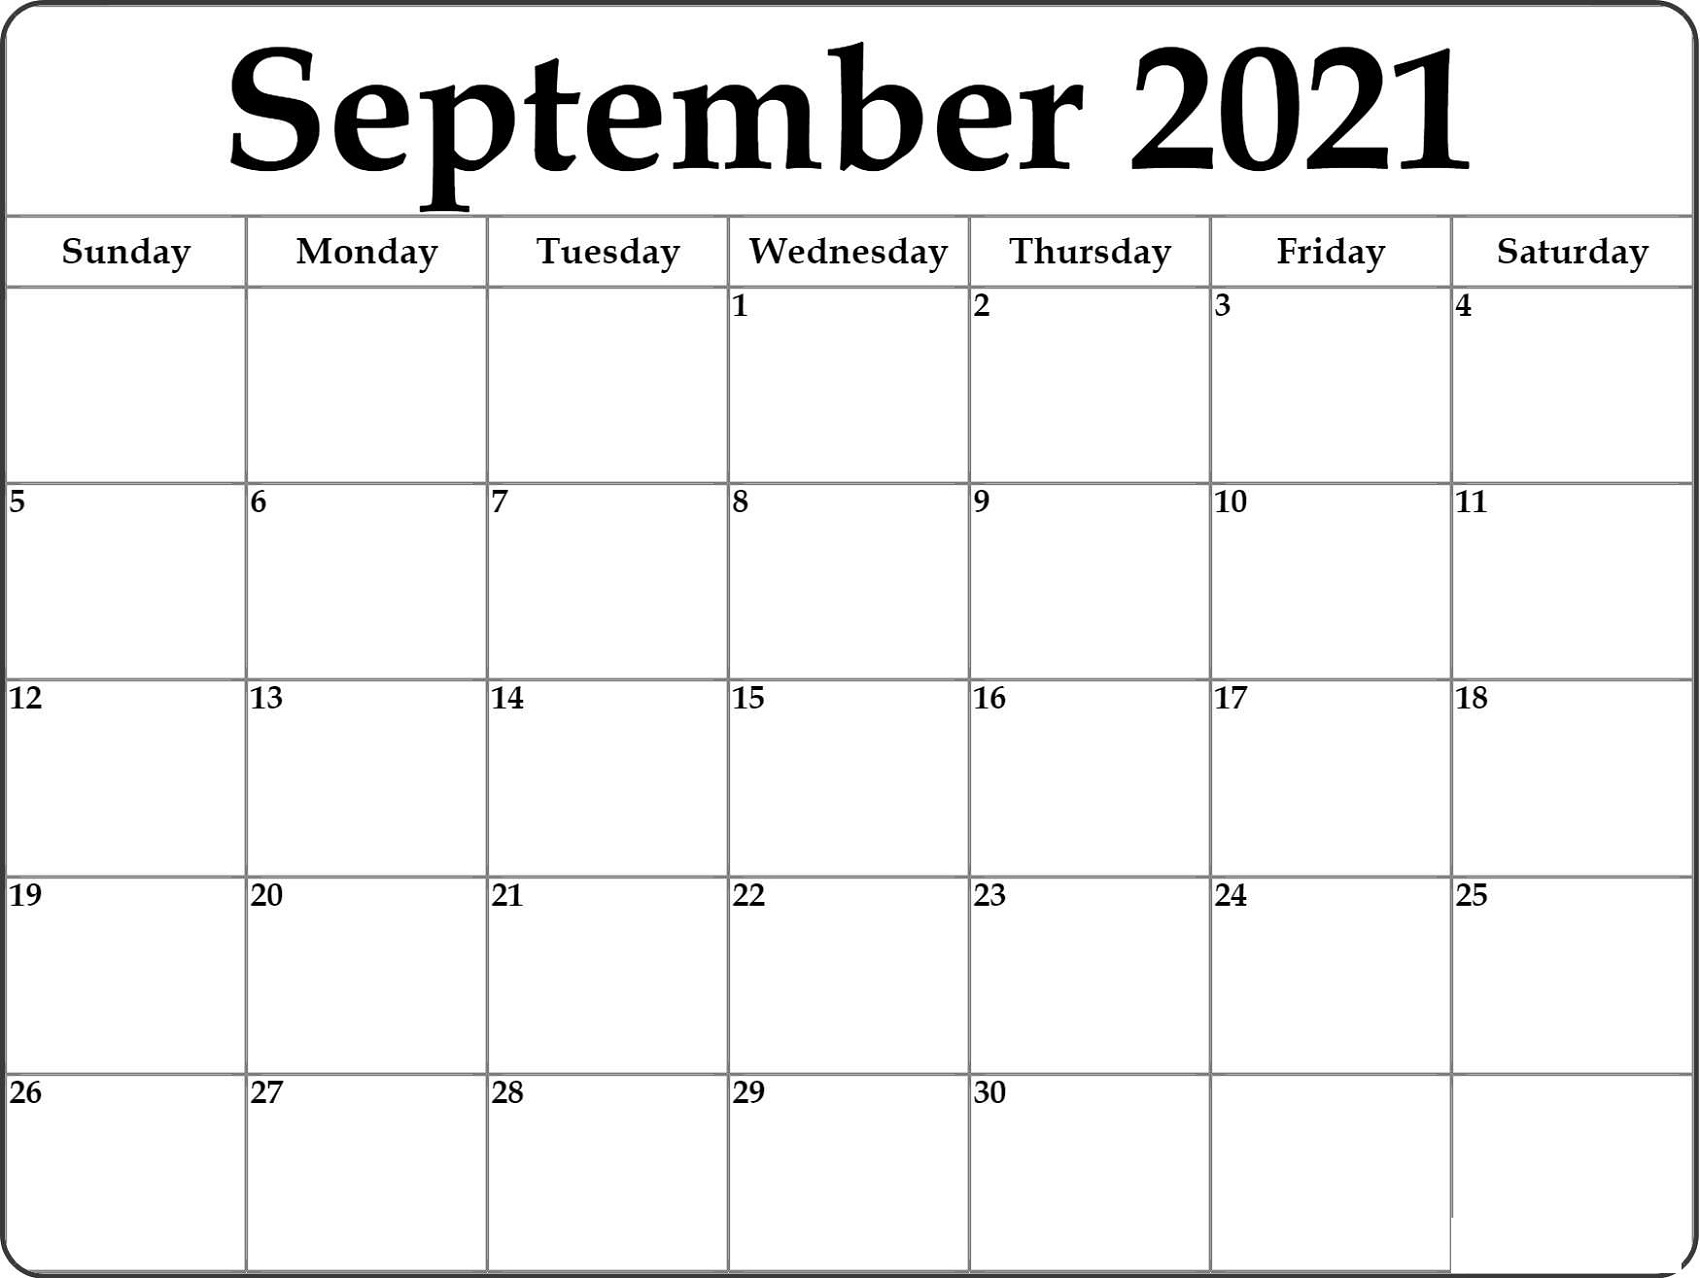 Blank Monthly Calendar 2021 Various Themes   Calendar Shelter with Free Printable September Blank Calendars With Christian Themes